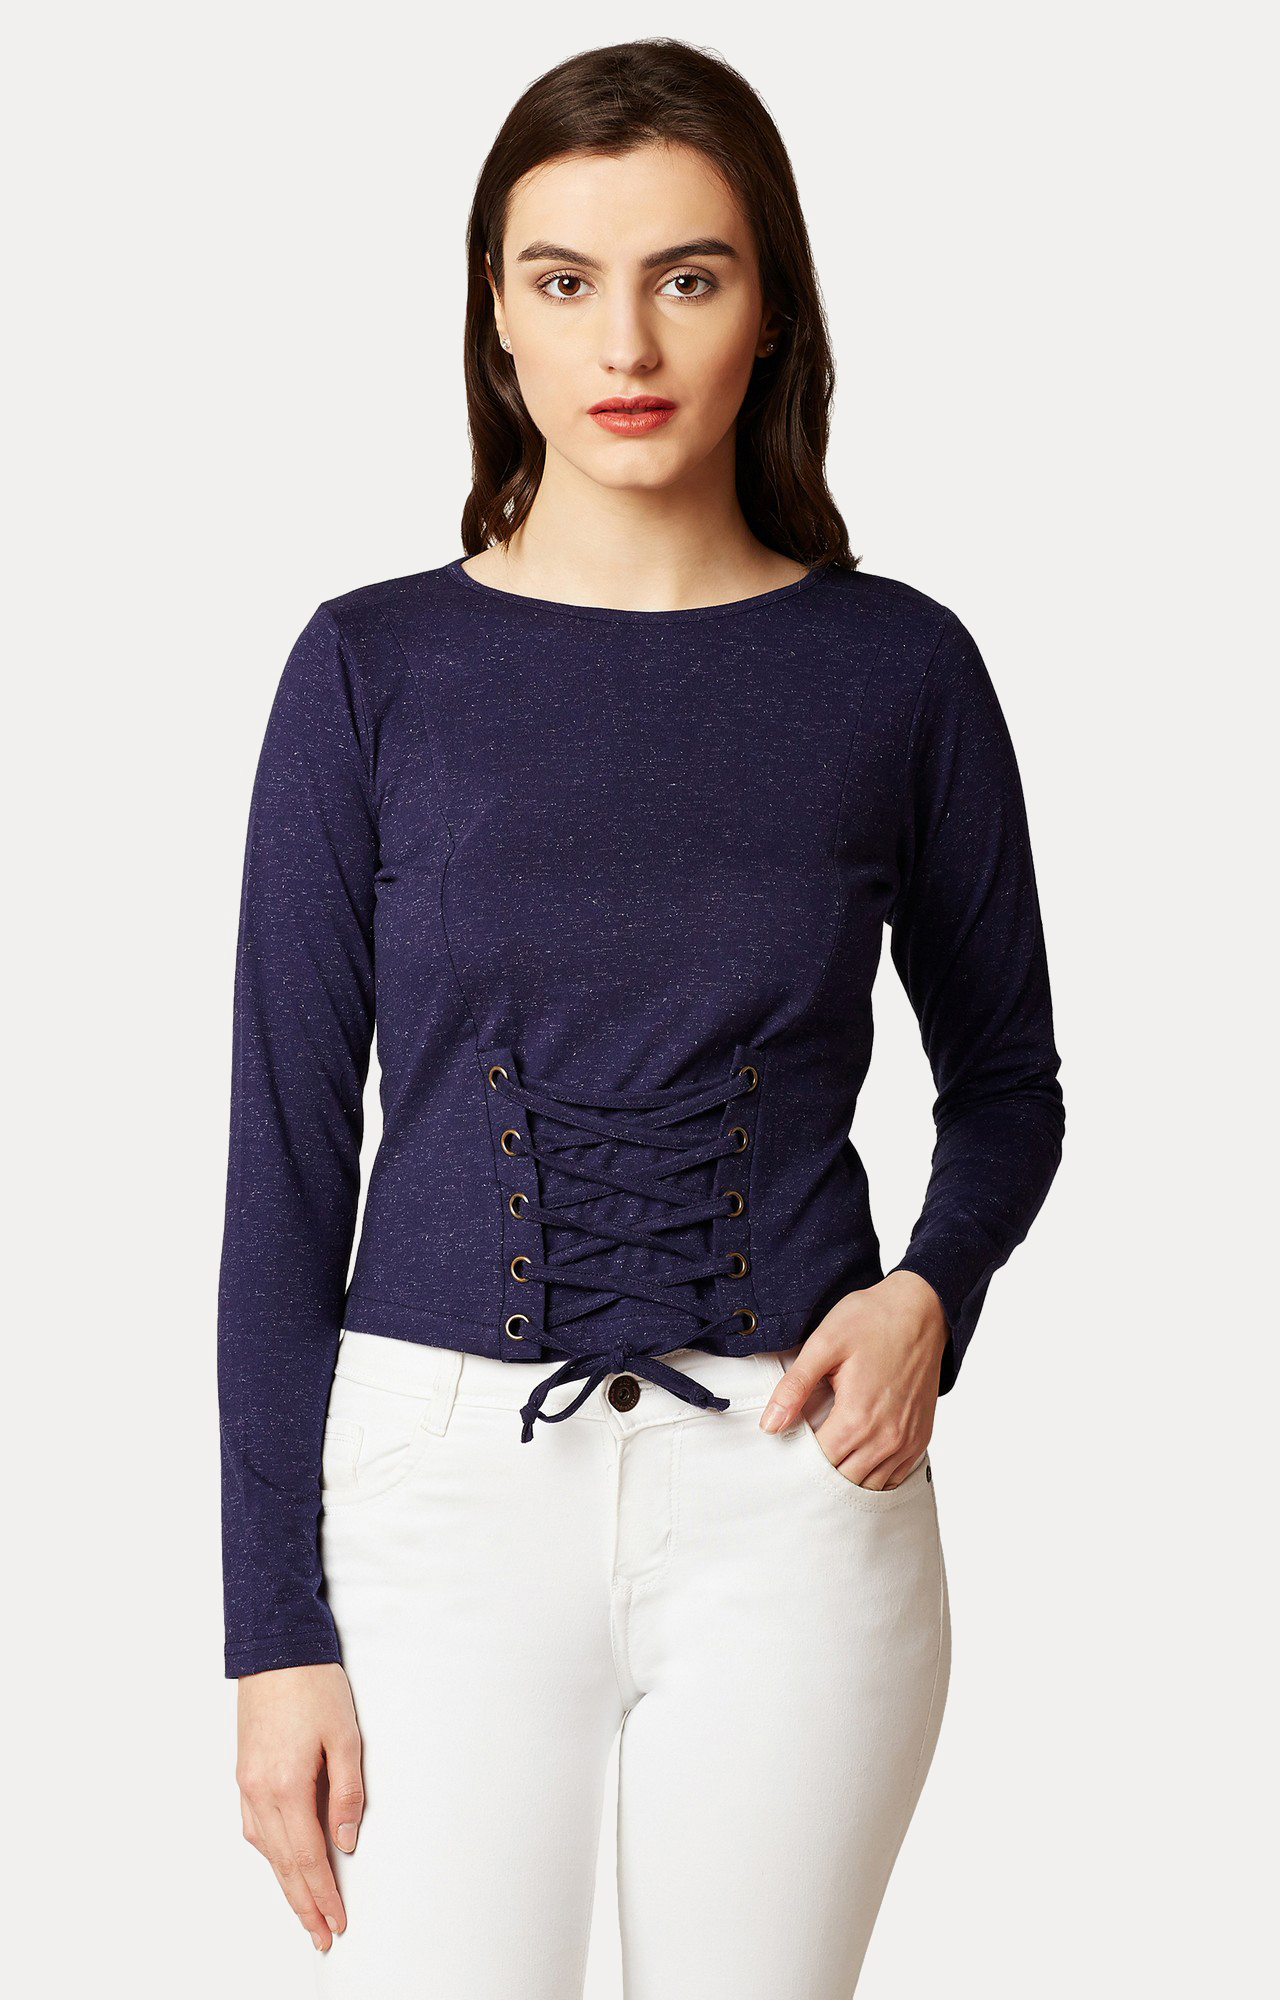 MISS CHASE | Navy Blue Paneled Criss Cross Tie-up Top